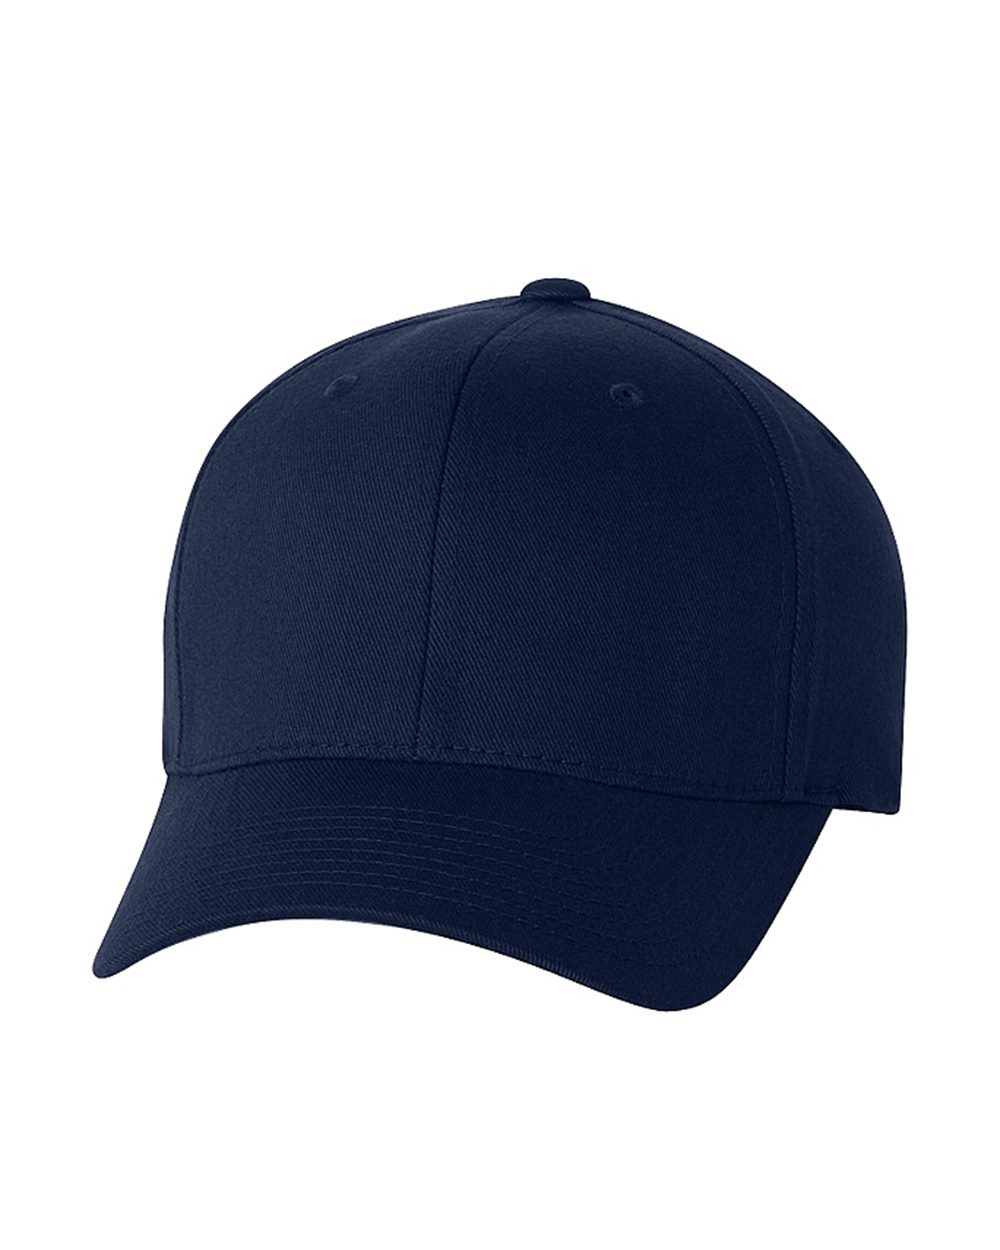 Flexfit 6277Y - Youth Twill Cap